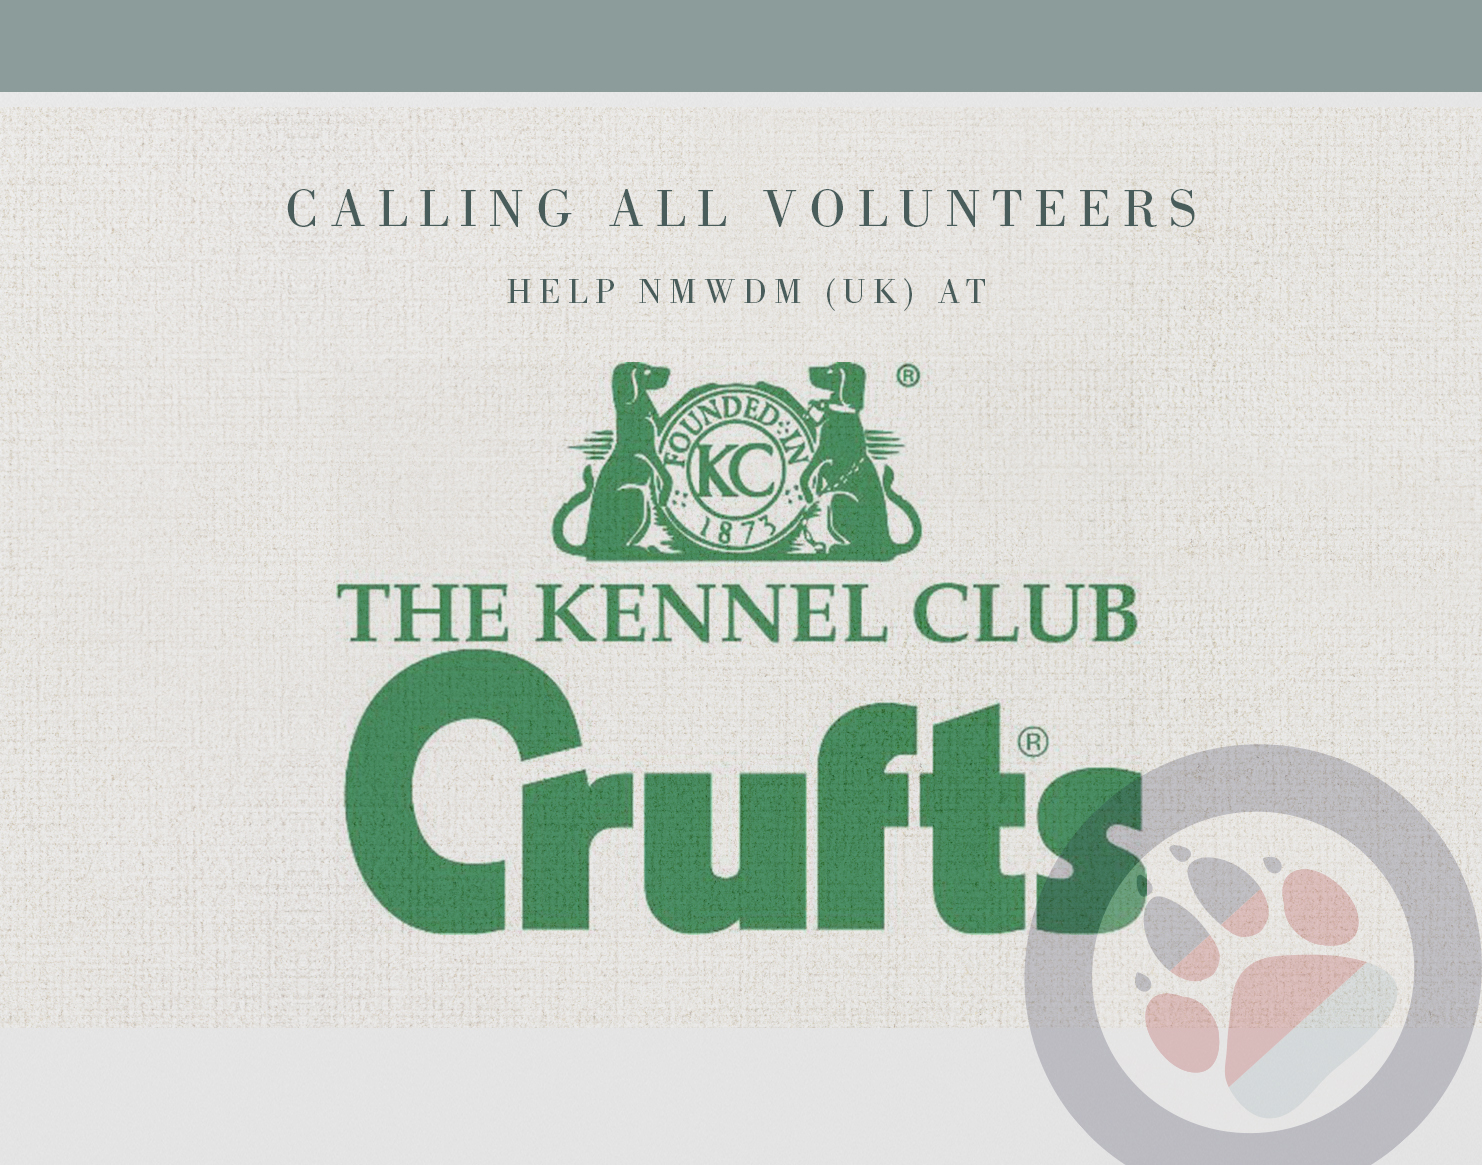 Volunteers needed to help at Crufts